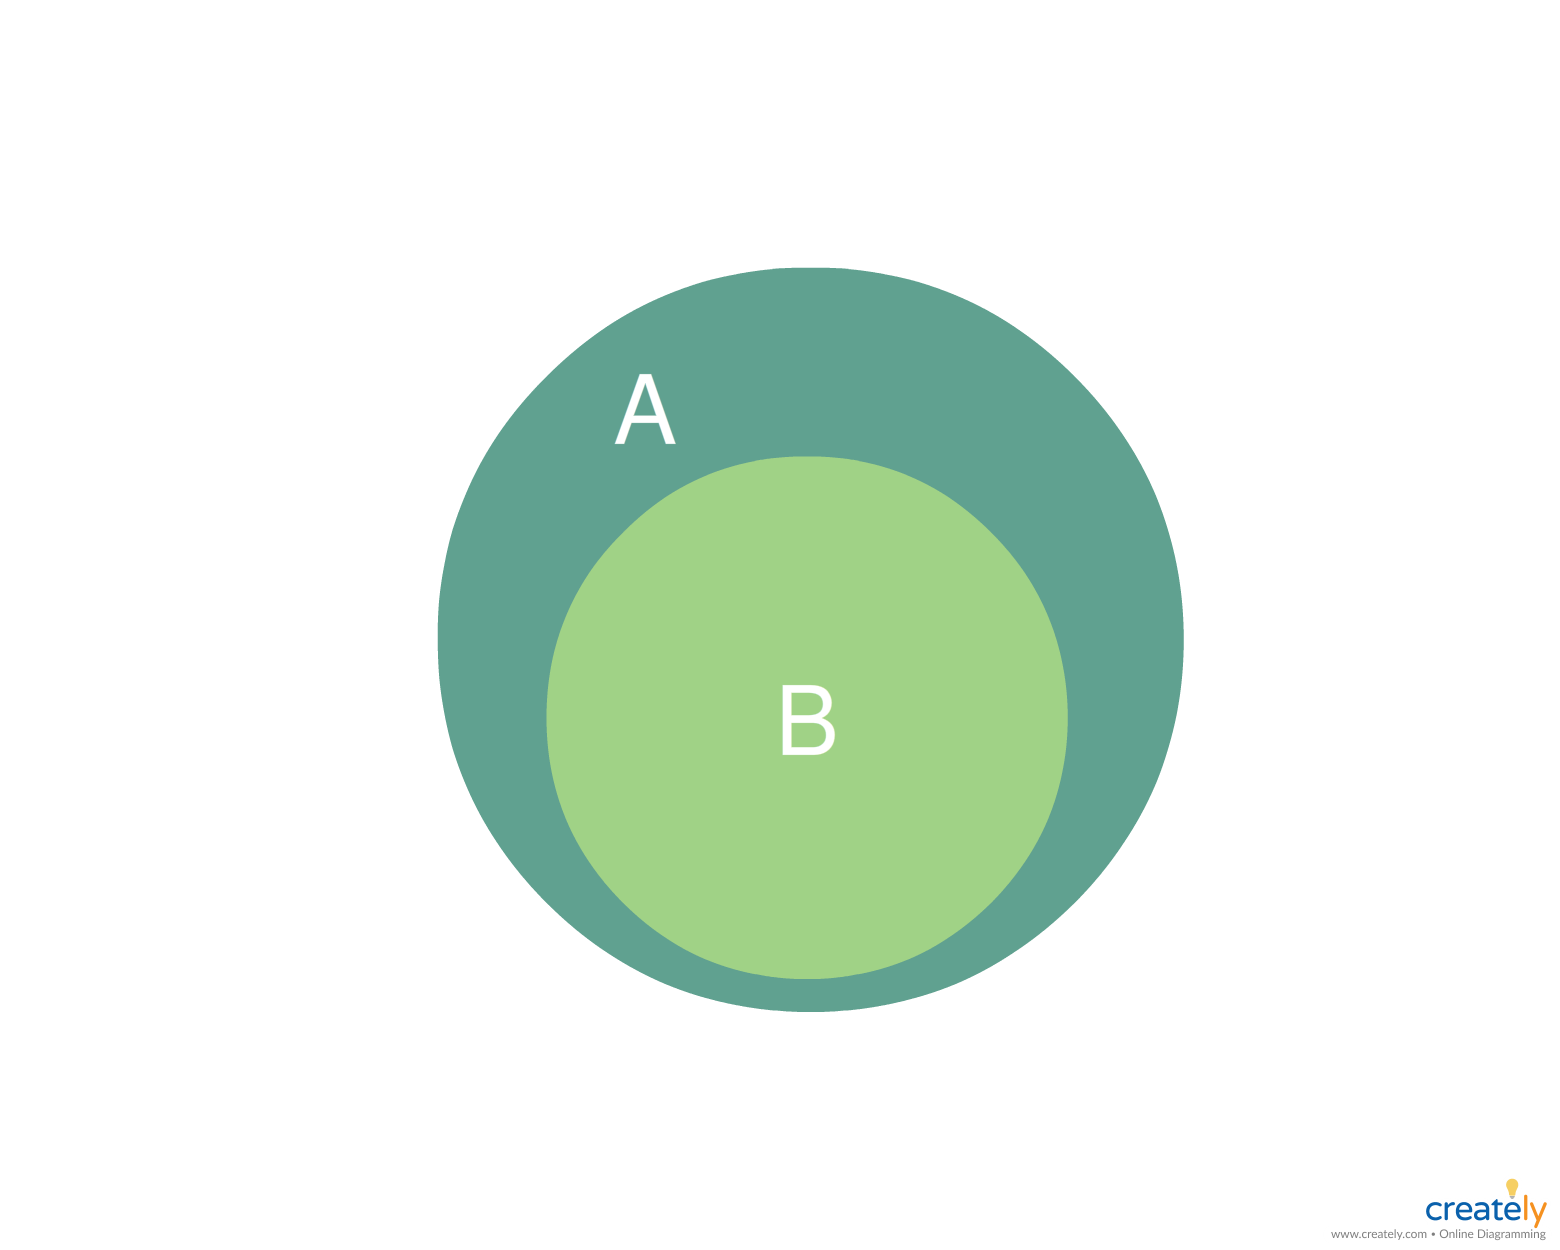 medium resolution of venn diagram example showing a is a proper subset of b and conversely b is a proper super set of a you can use this as a template by clicking on the